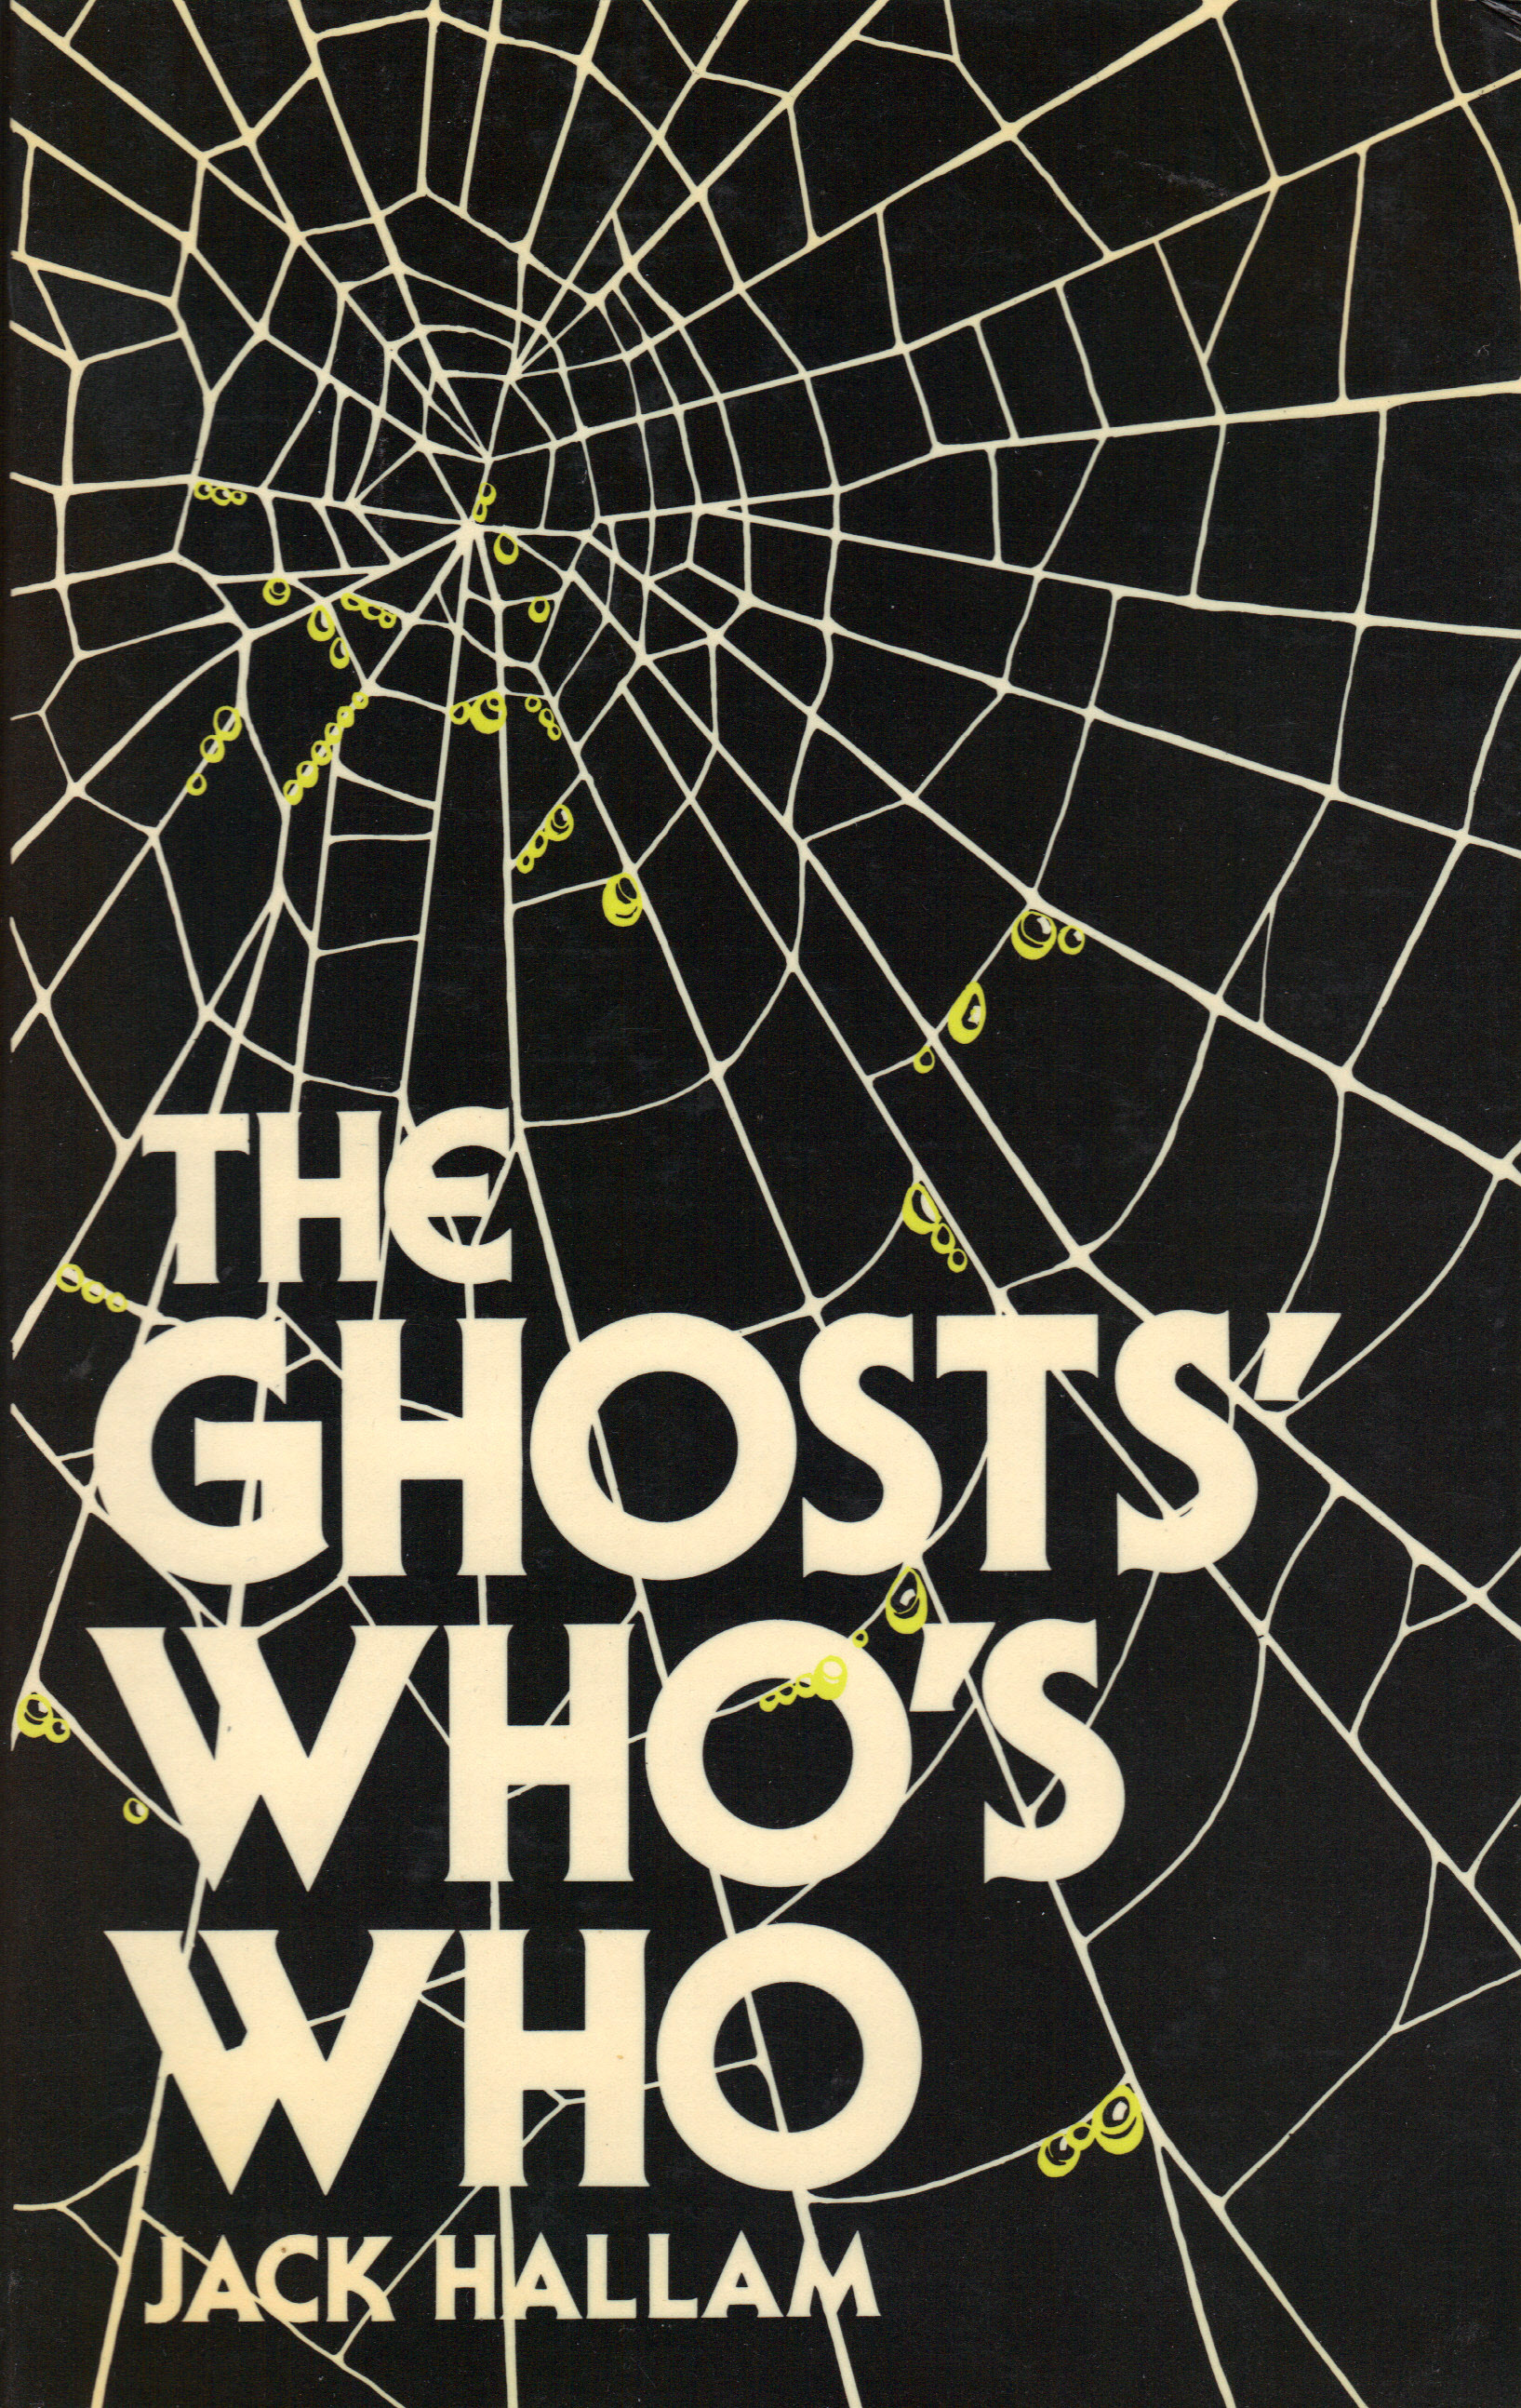 Image for THE GHOSTS' WHO'S WHO